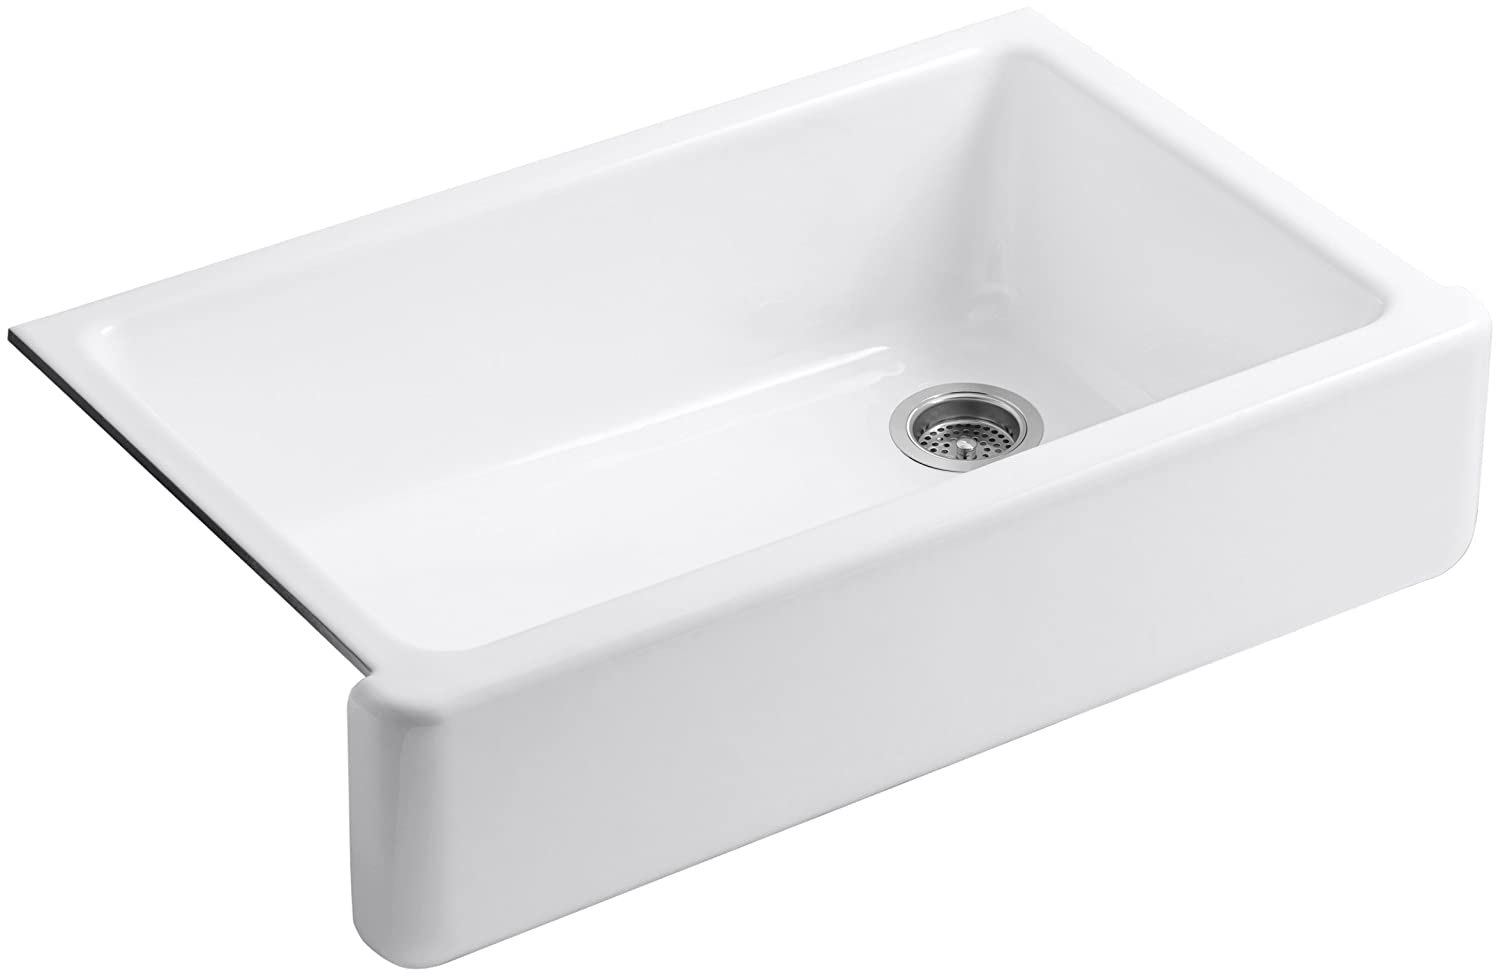 36 Inch Farm Sink : 36 Inch Farmhouse Sink Best Kitchen Faucets